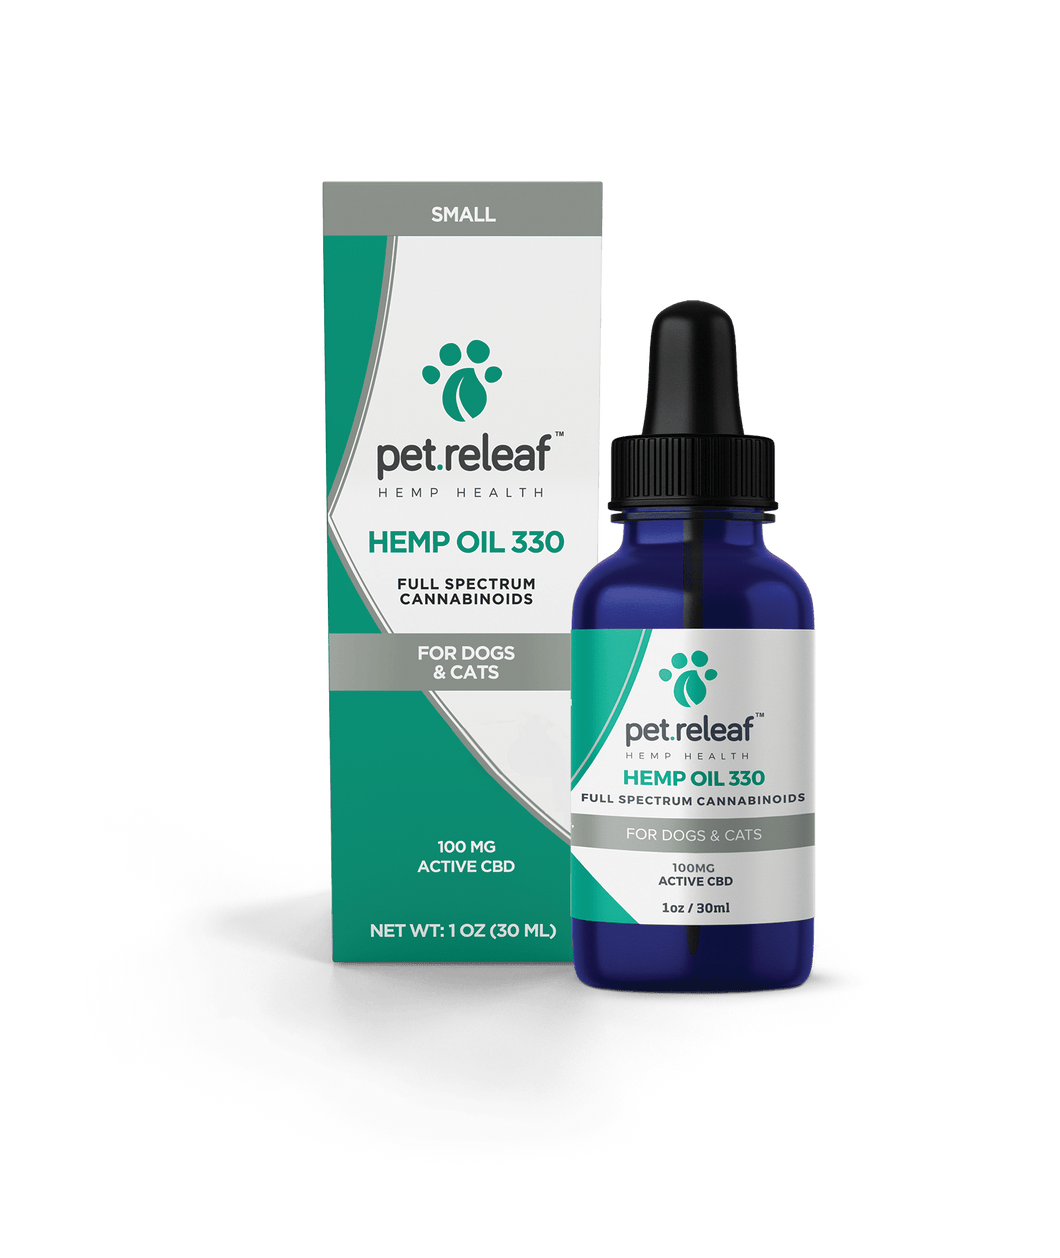 Pet Releaf Pet Releaf Hemp Oil 330